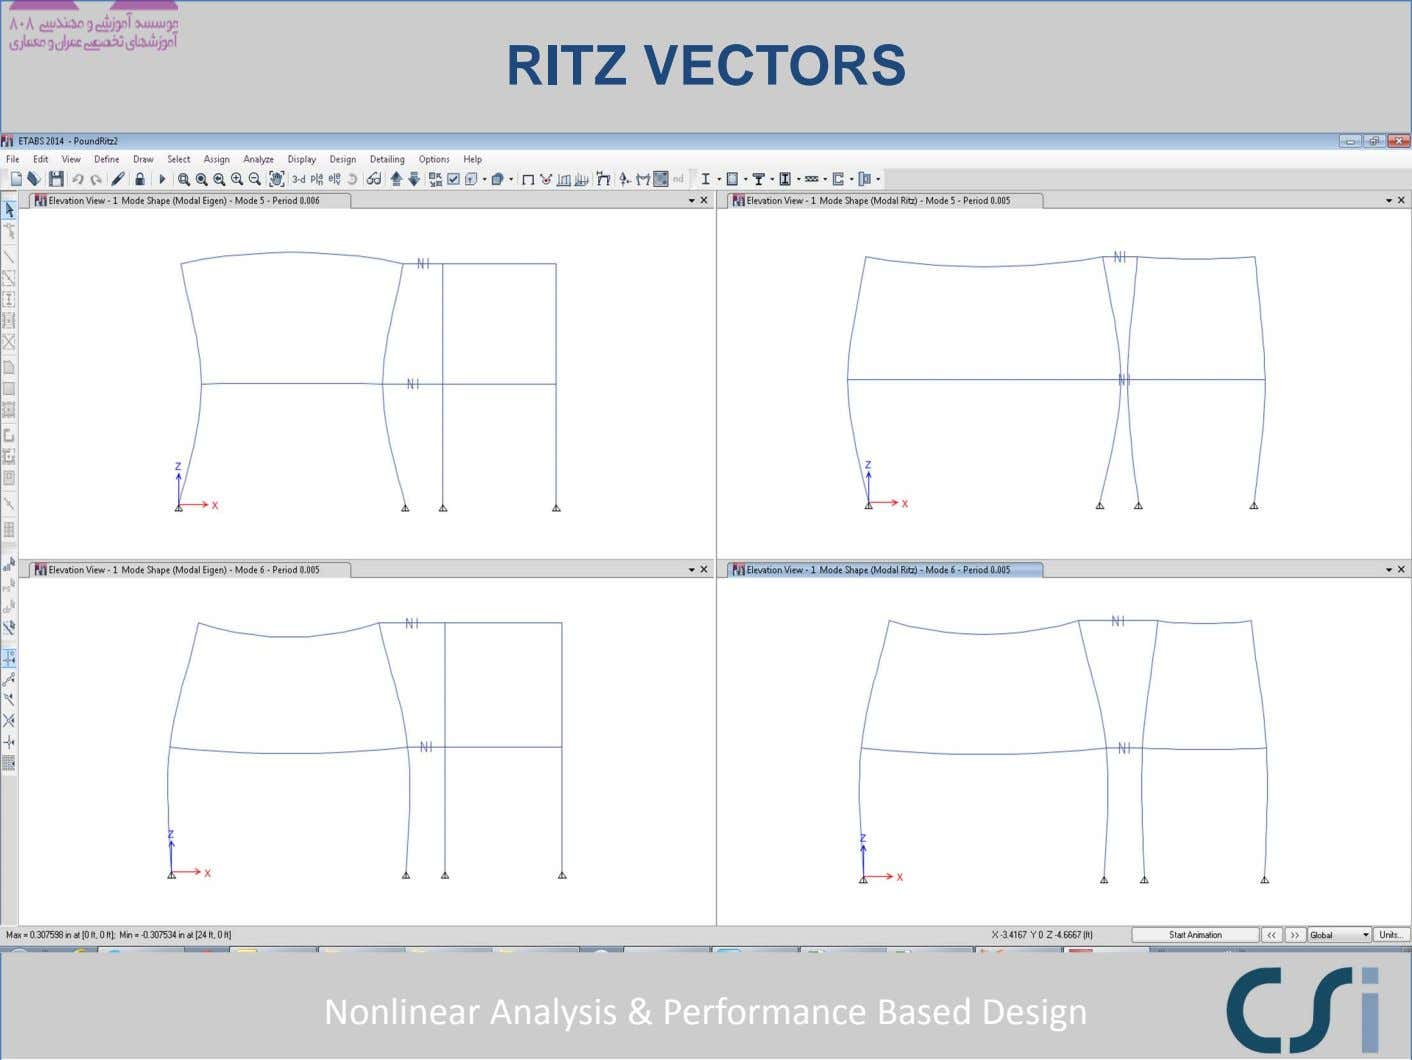 RITZ VECTORS Nonlinear Analysis & Performance Based Design